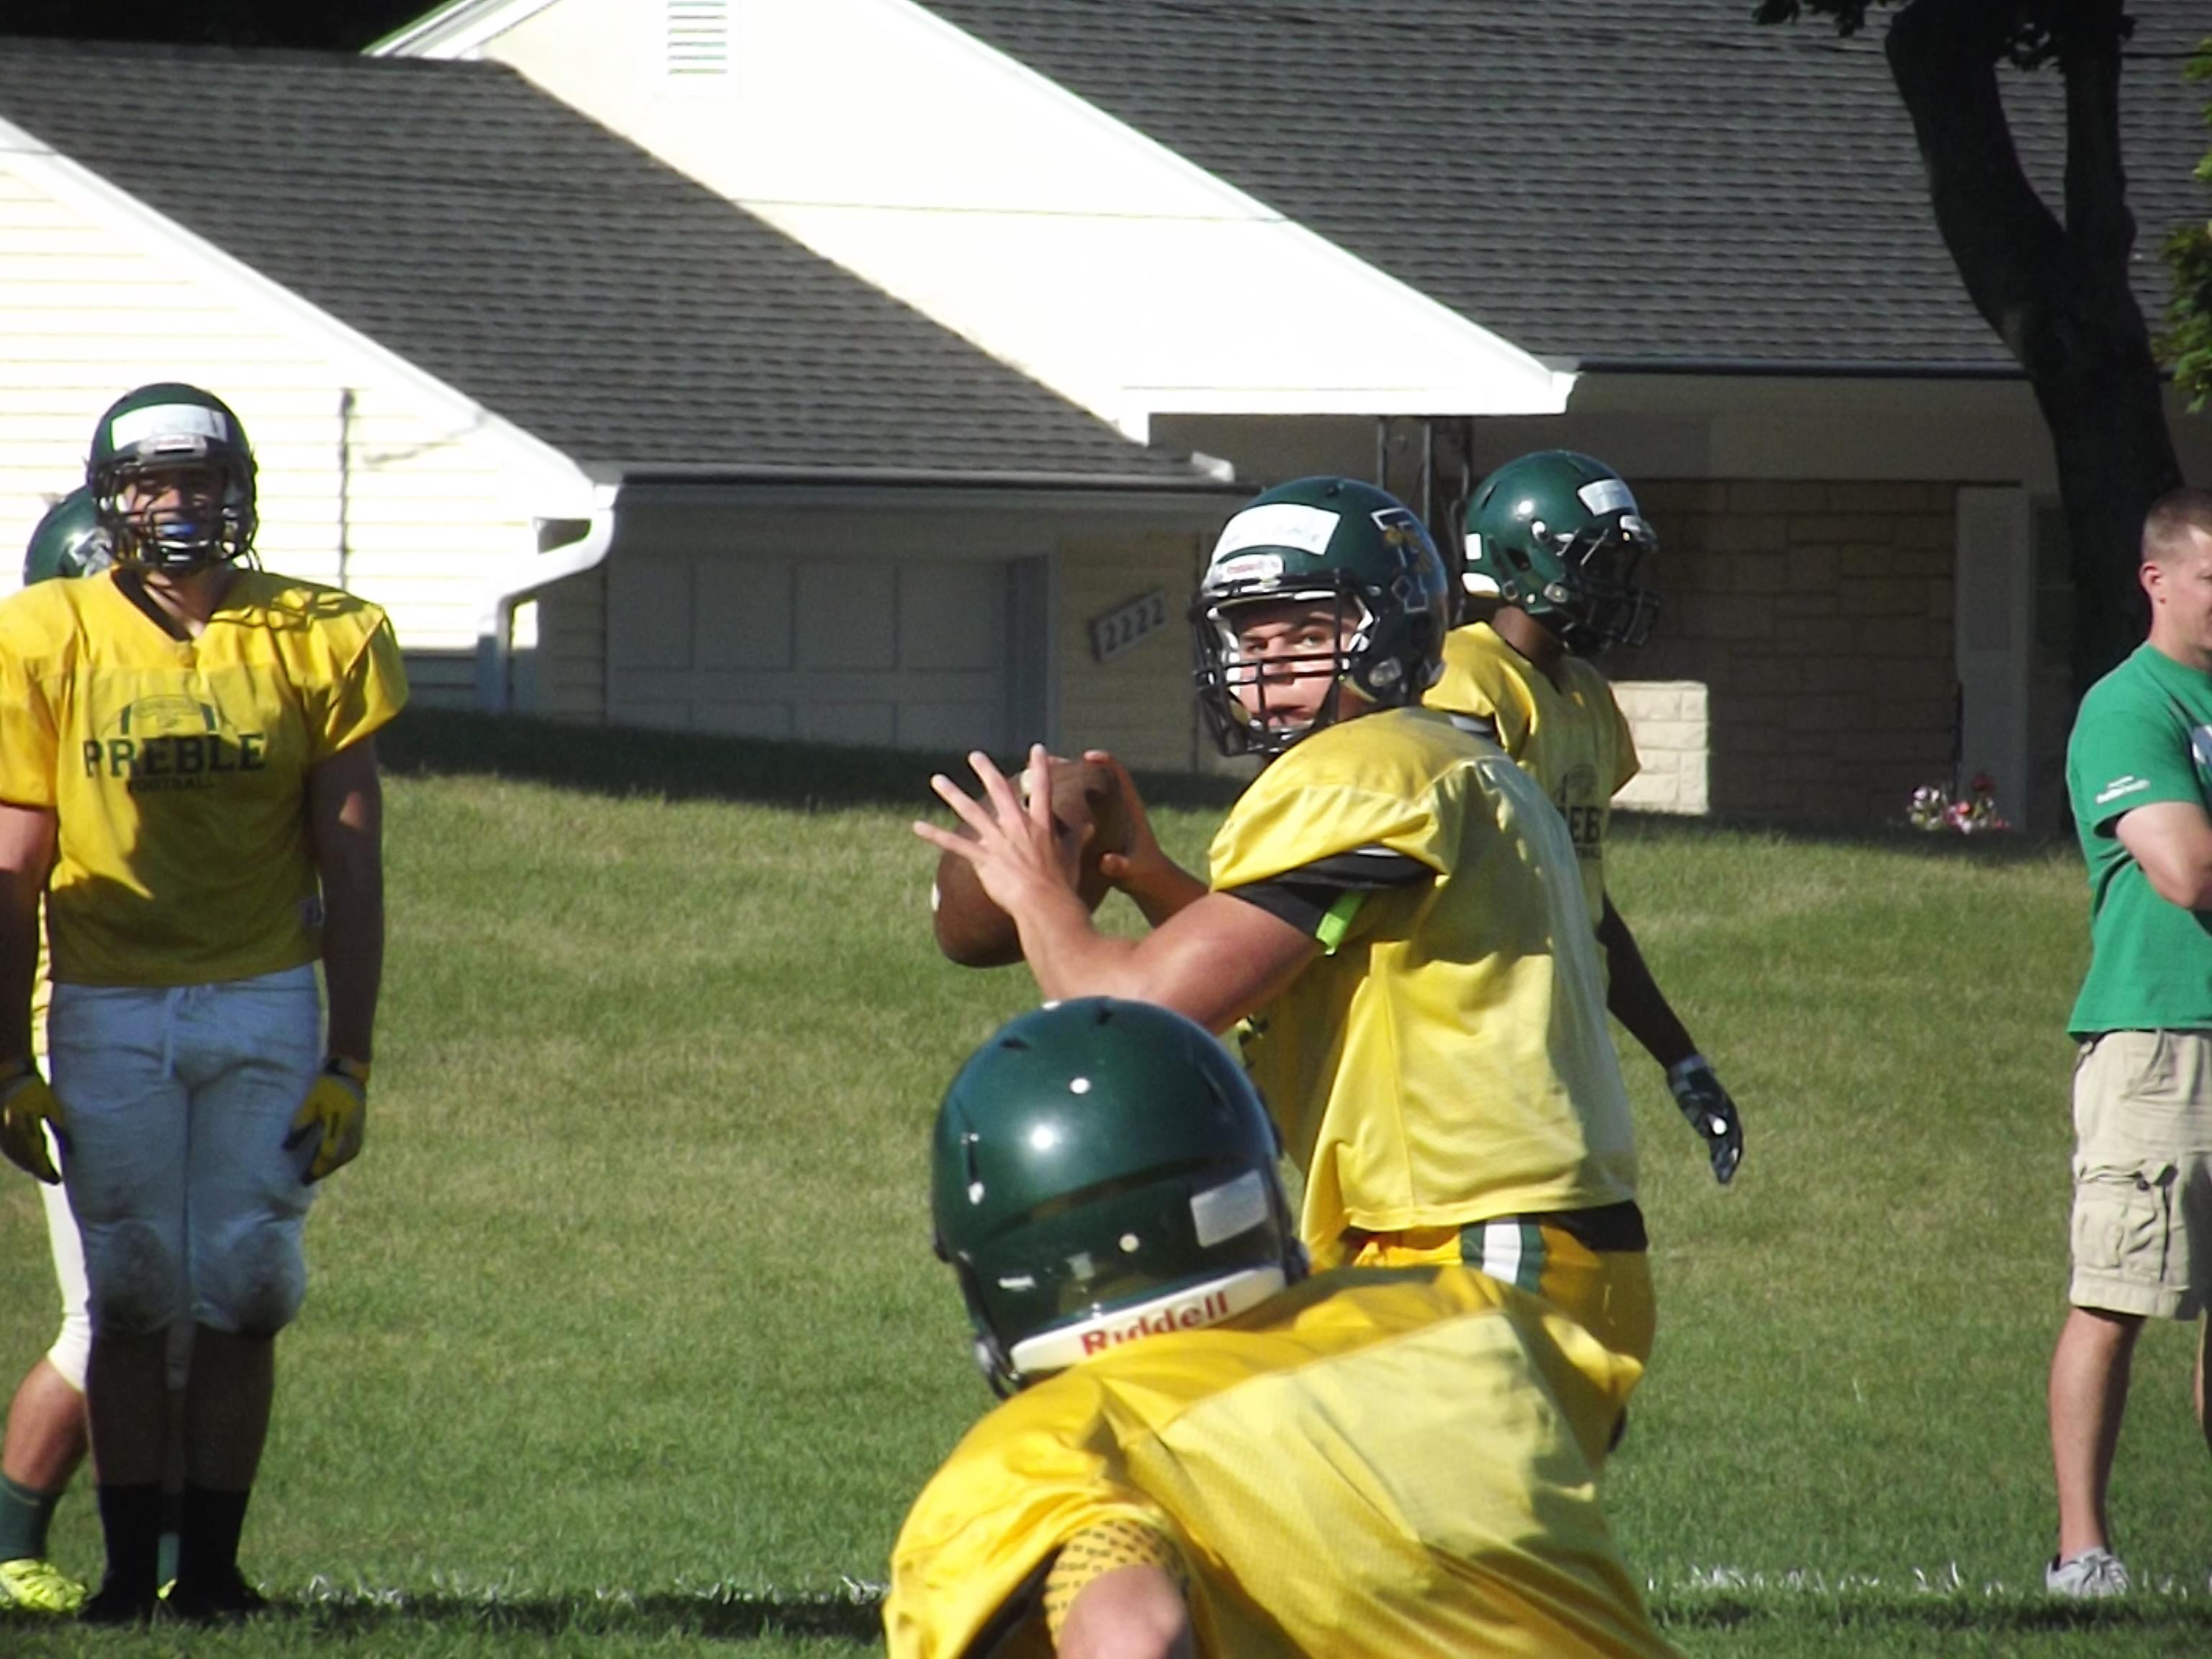 Green Bay Preble junior quarterback Coy Wanner gets ready to release a pass at practice Tuesday. Wanner is competing for playing time with senior Dylan Van Boxel.